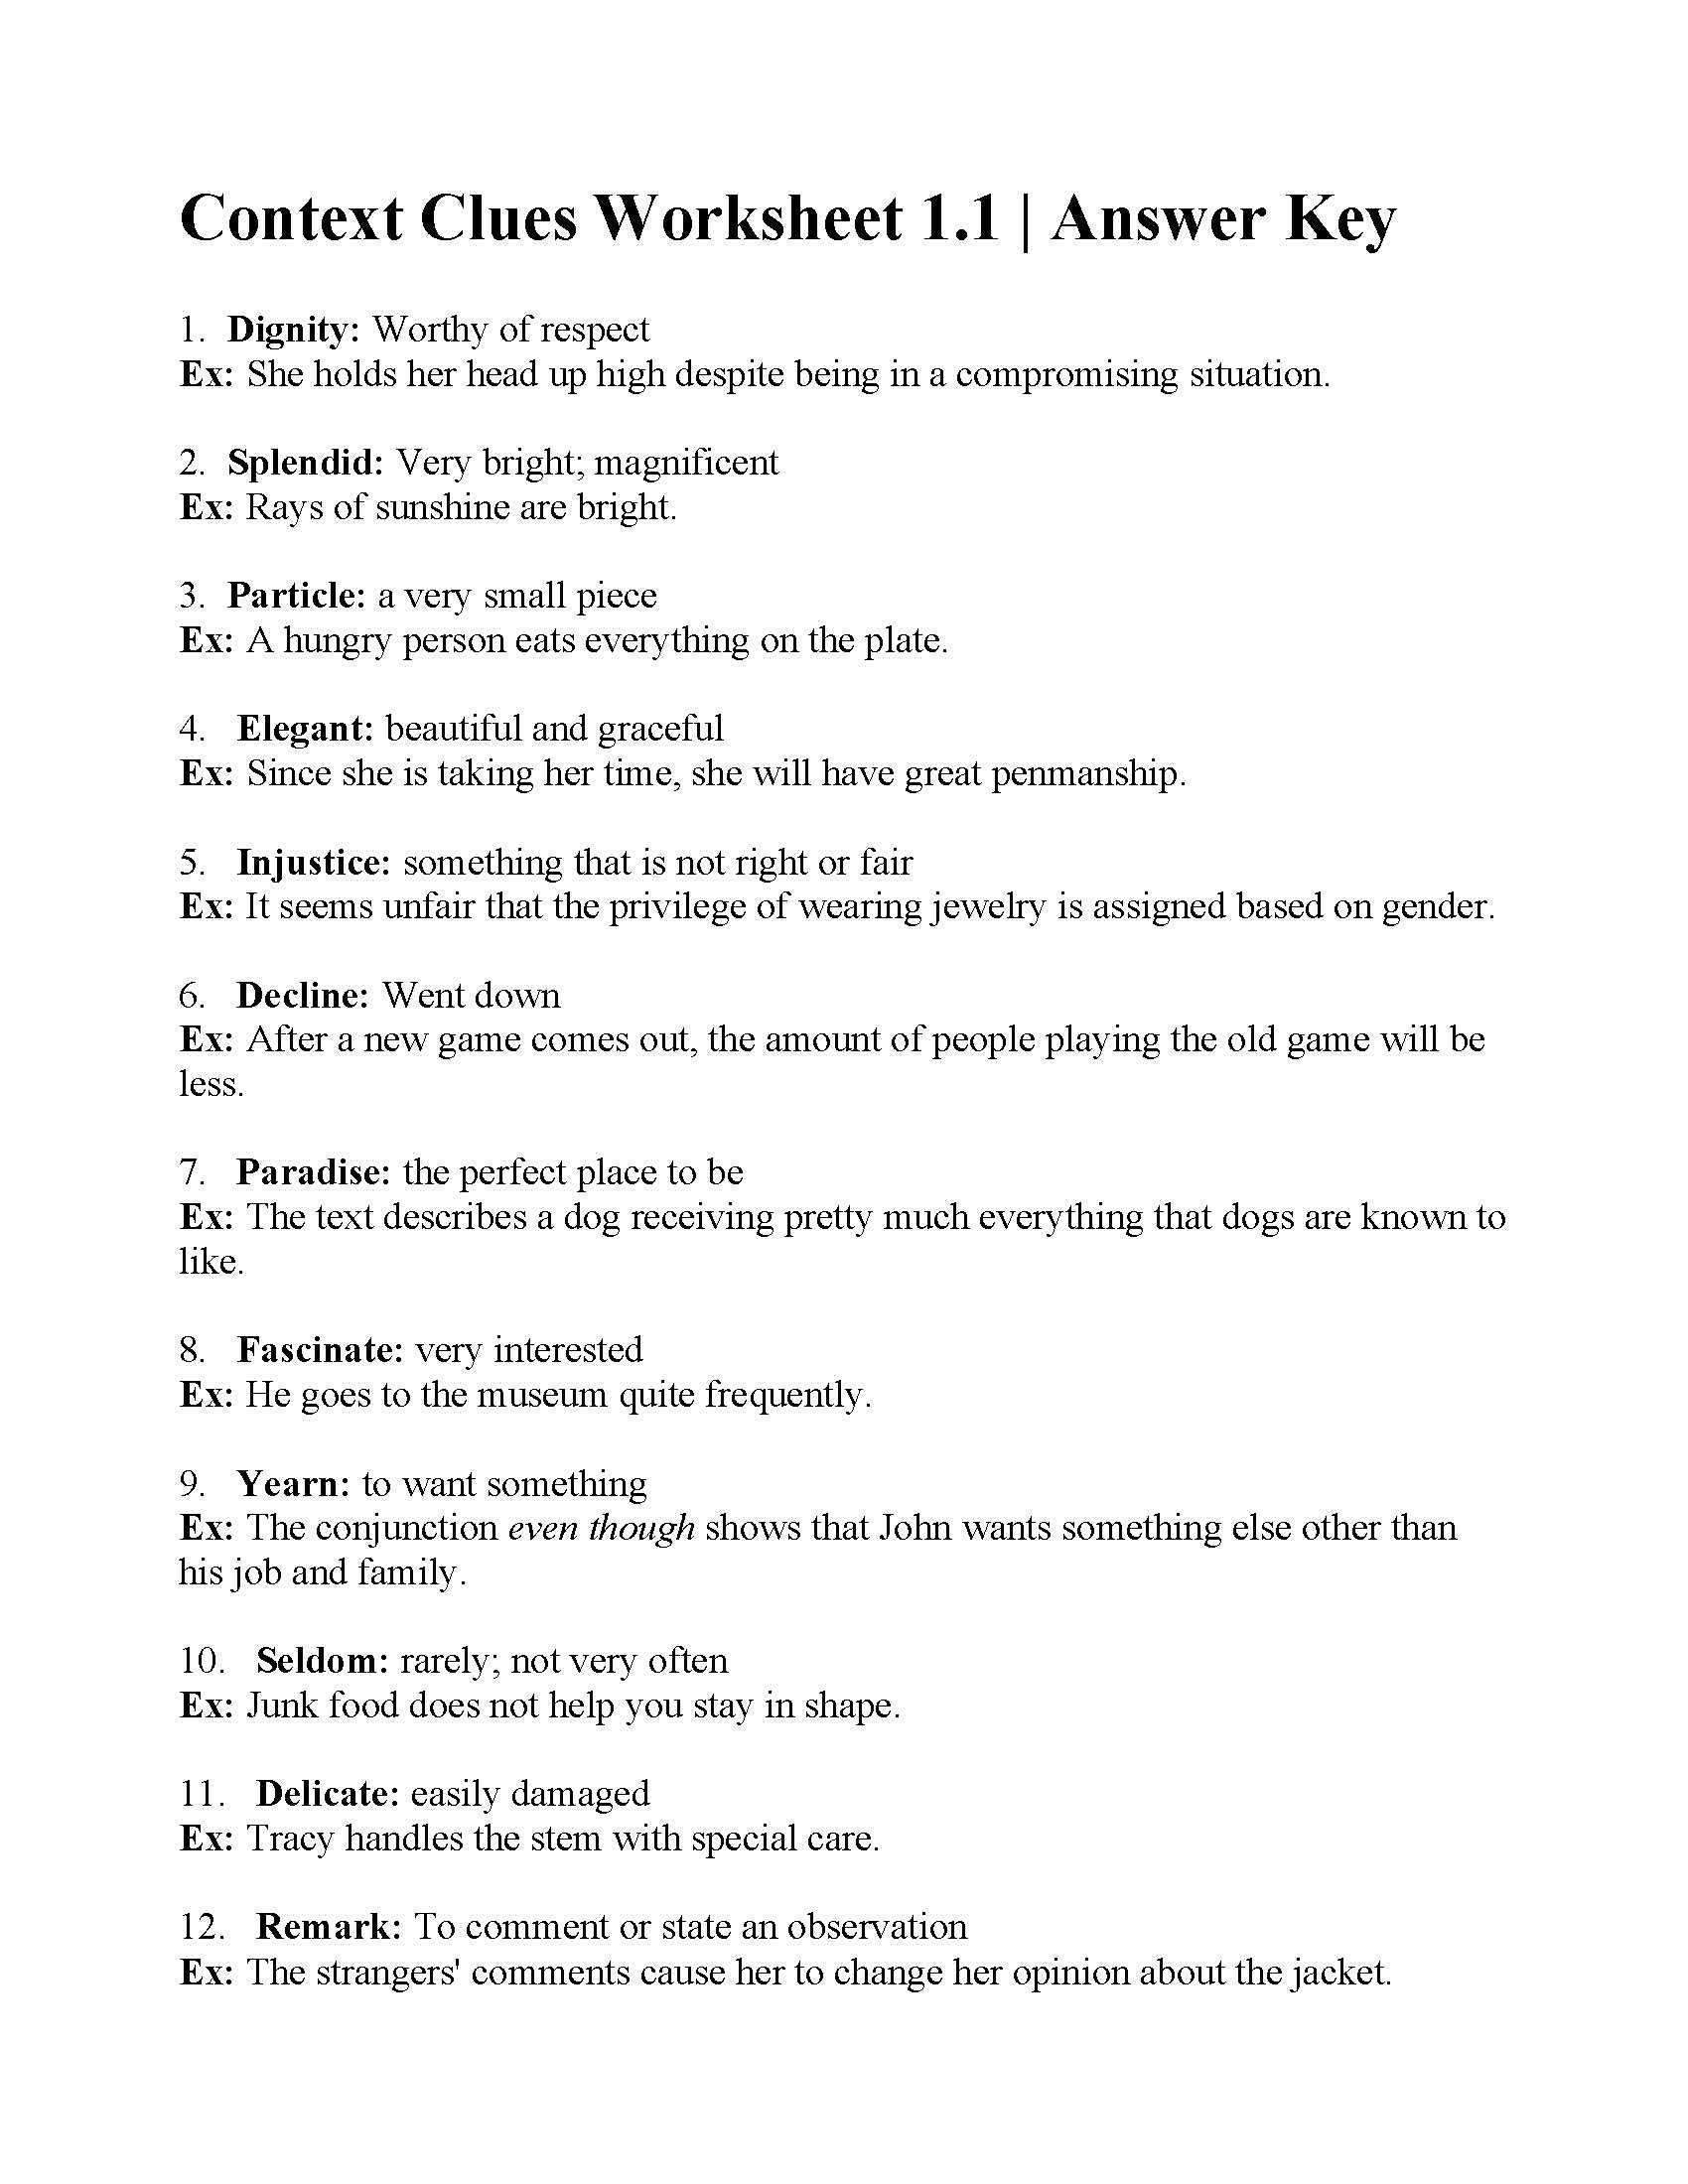 Context Clues Worksheets 6th Grade Teacher Worksheets Context Clues